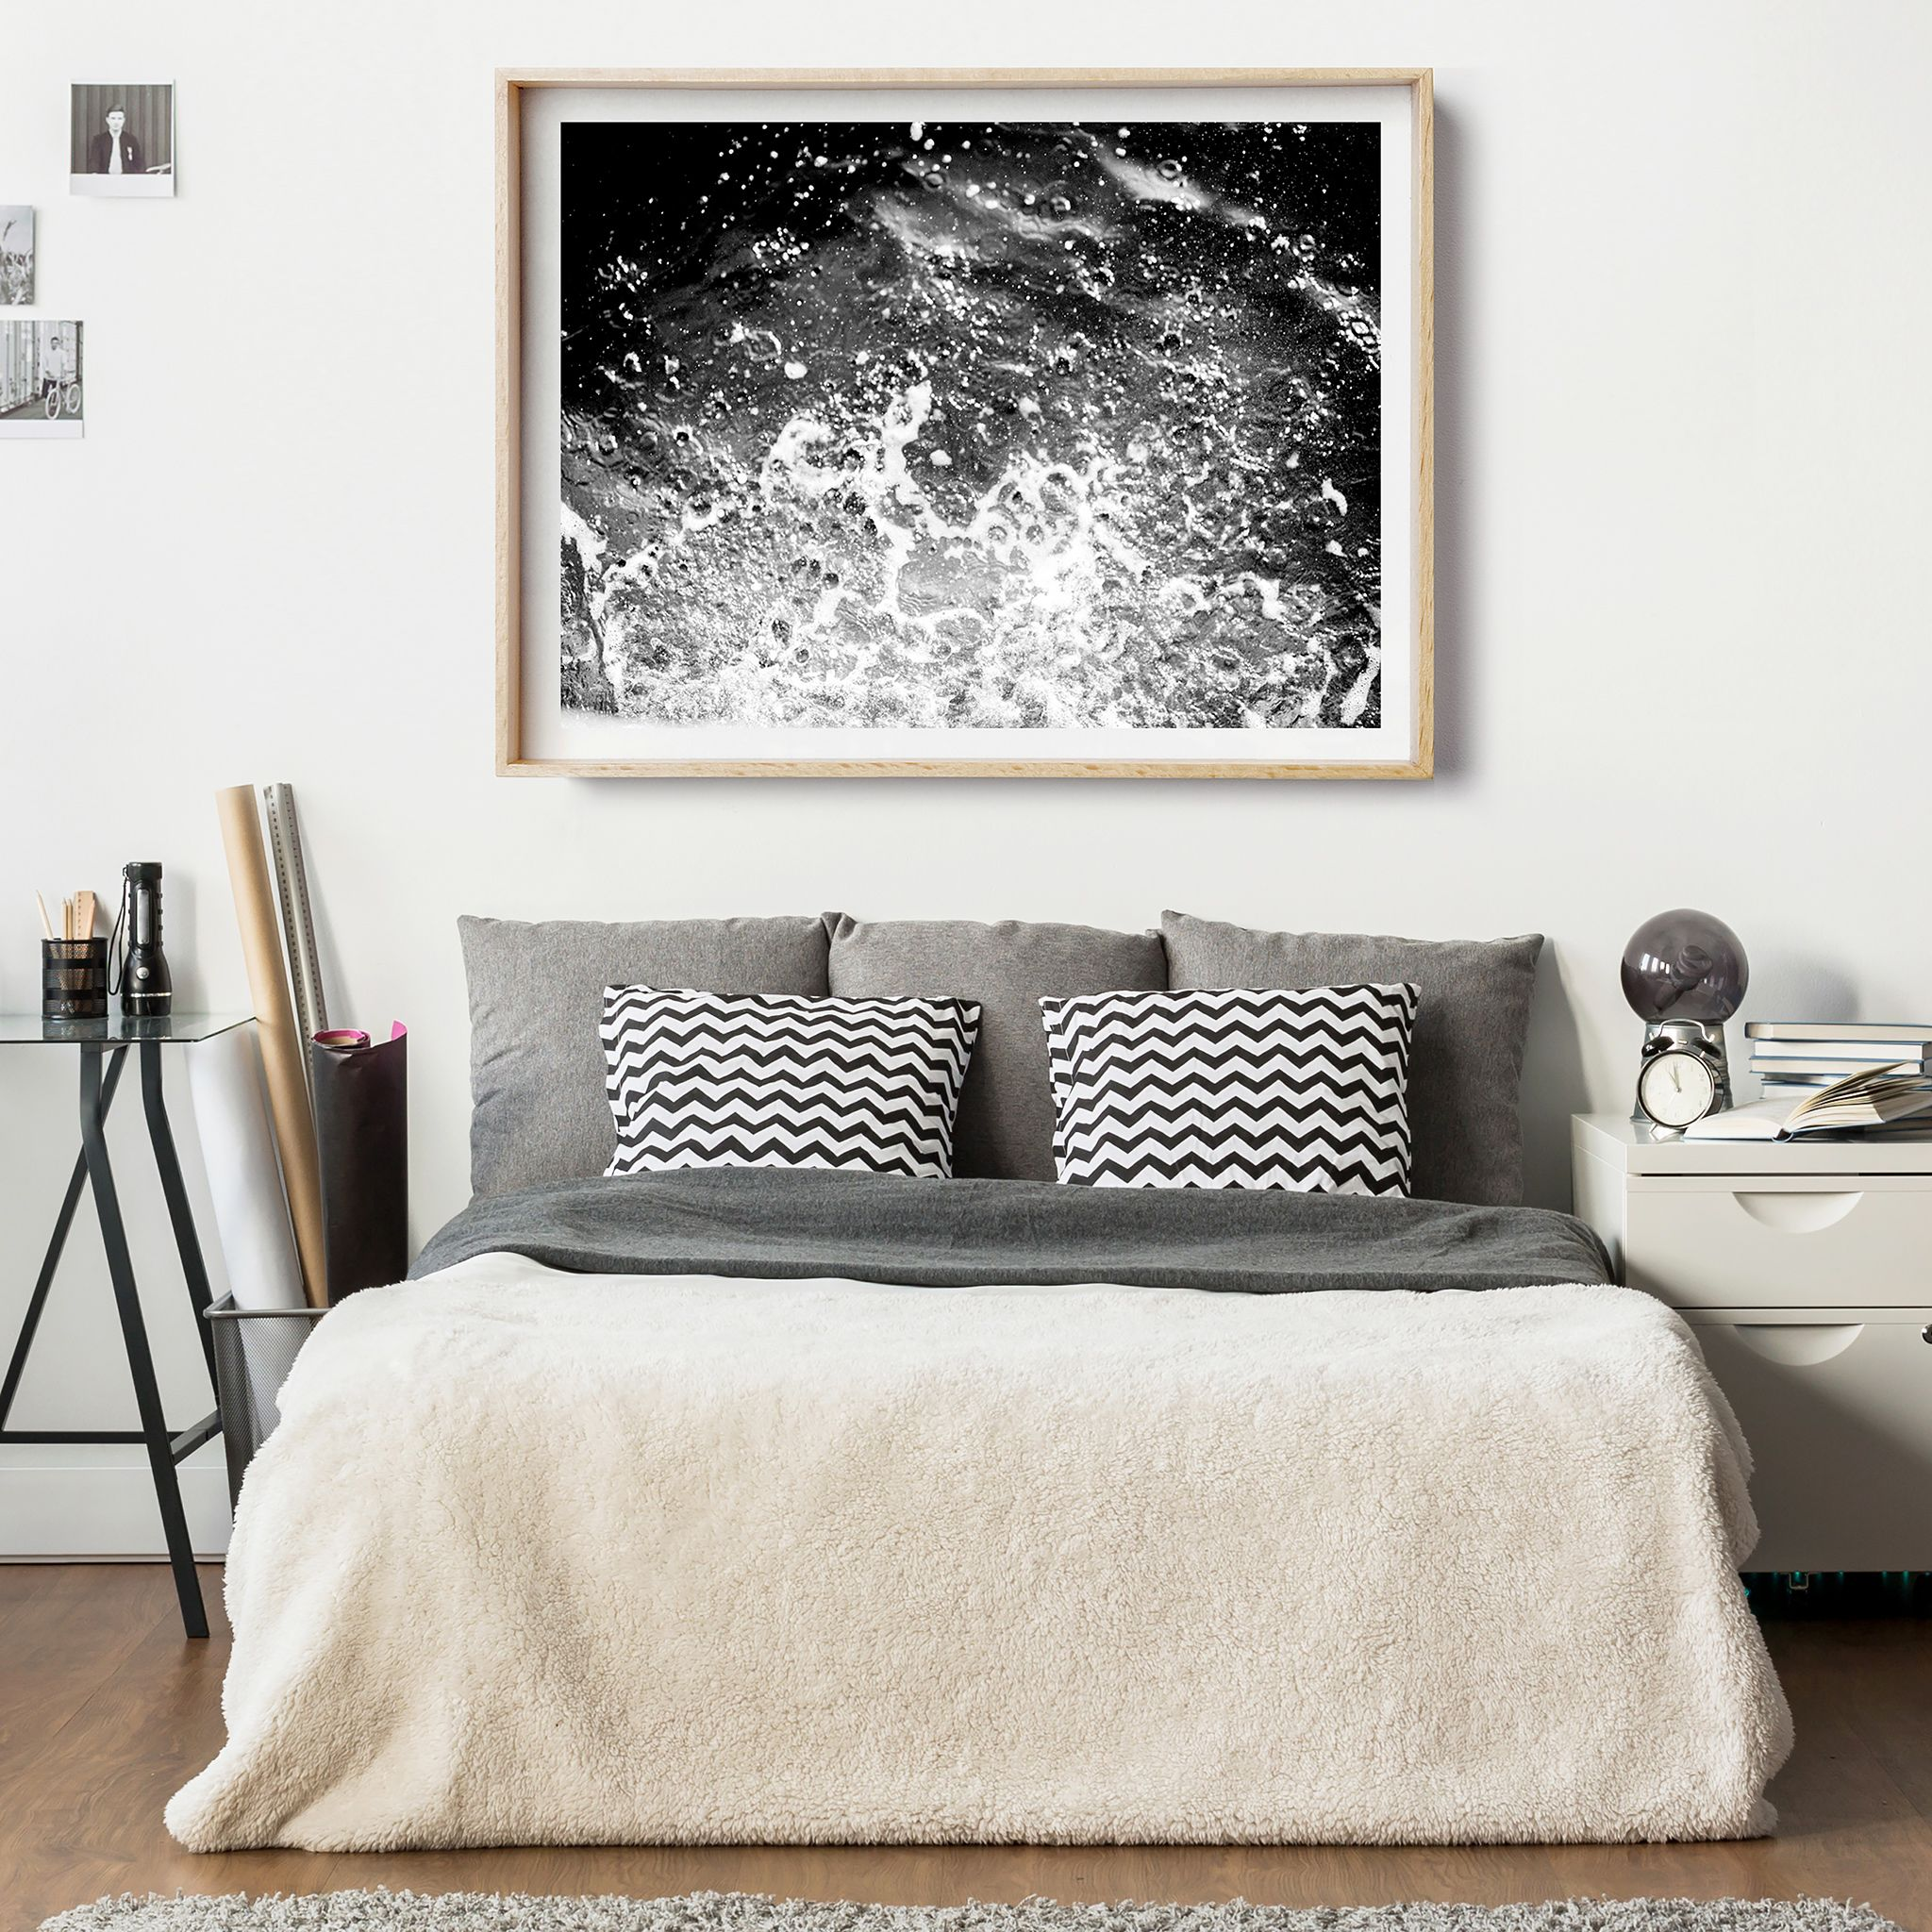 Ocean Life II - Monochrome tones of ocean waves, crashing the shore, so bold and striking. I love this print, perfect for black and white interiors.Photographic Art - Framed Wall Art - Coastal Decor - Nature Landscape Art Print. Nepal Mountains I - Nepal Travel Photography. Affordable Art